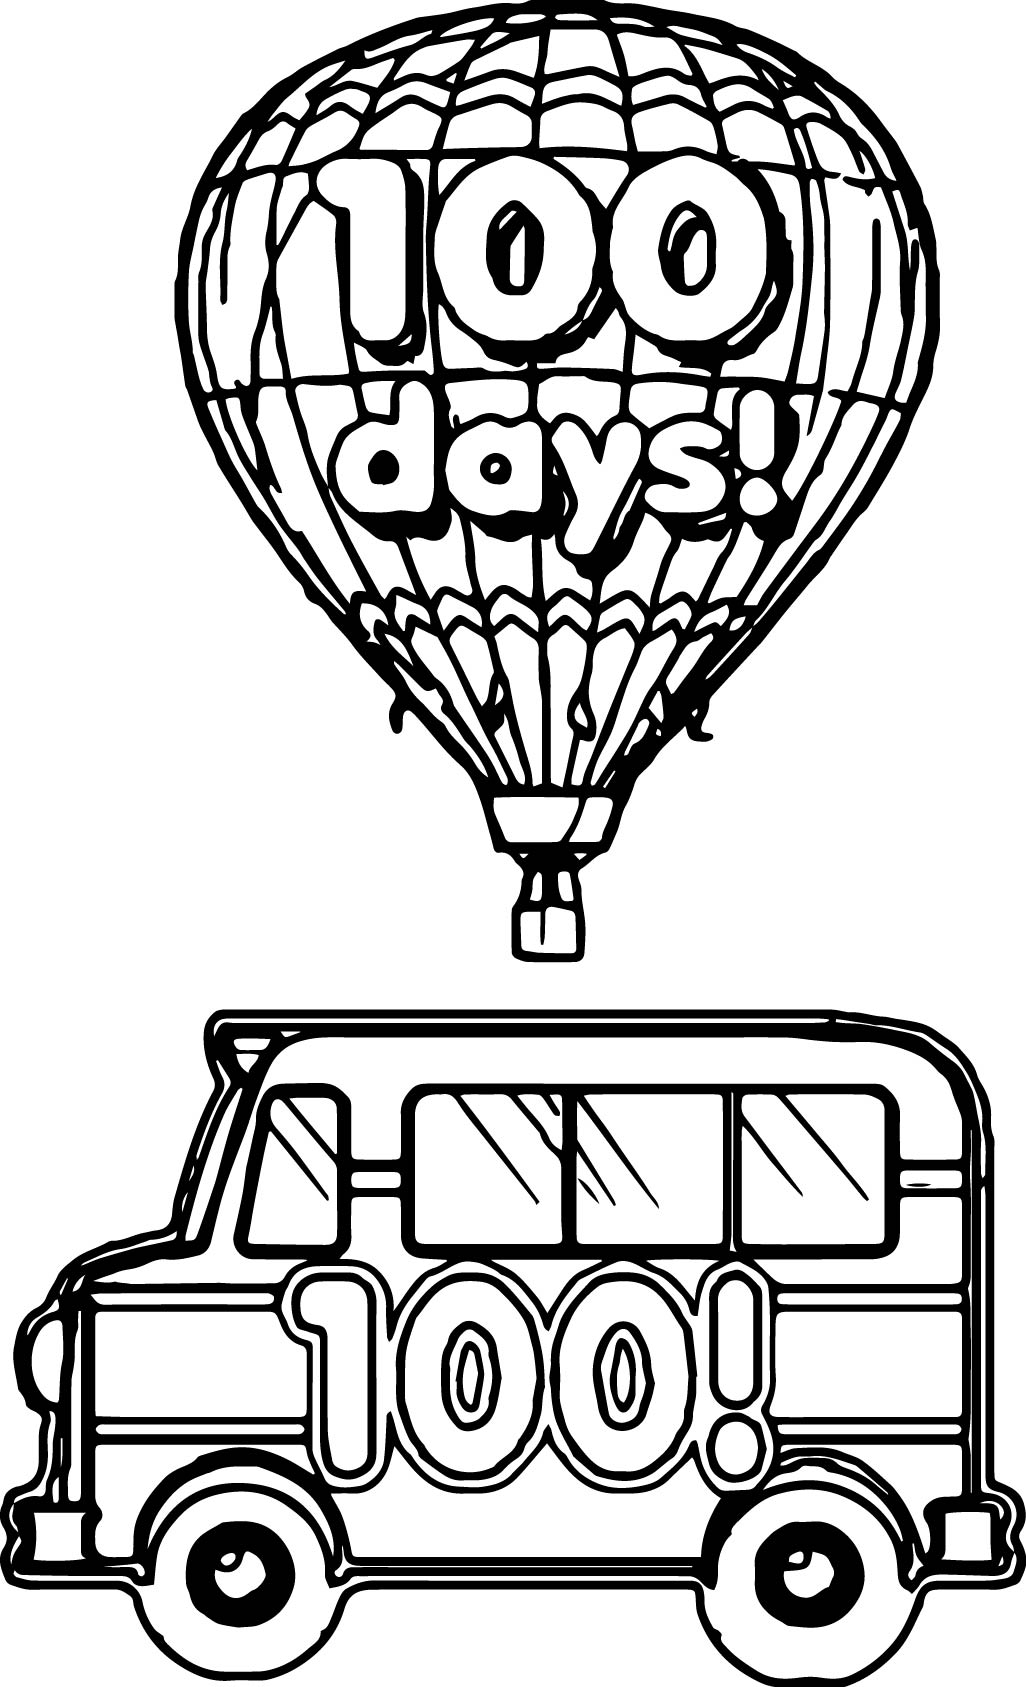 100 Days Bus Balloon Coloring Page | Wecoloringpage